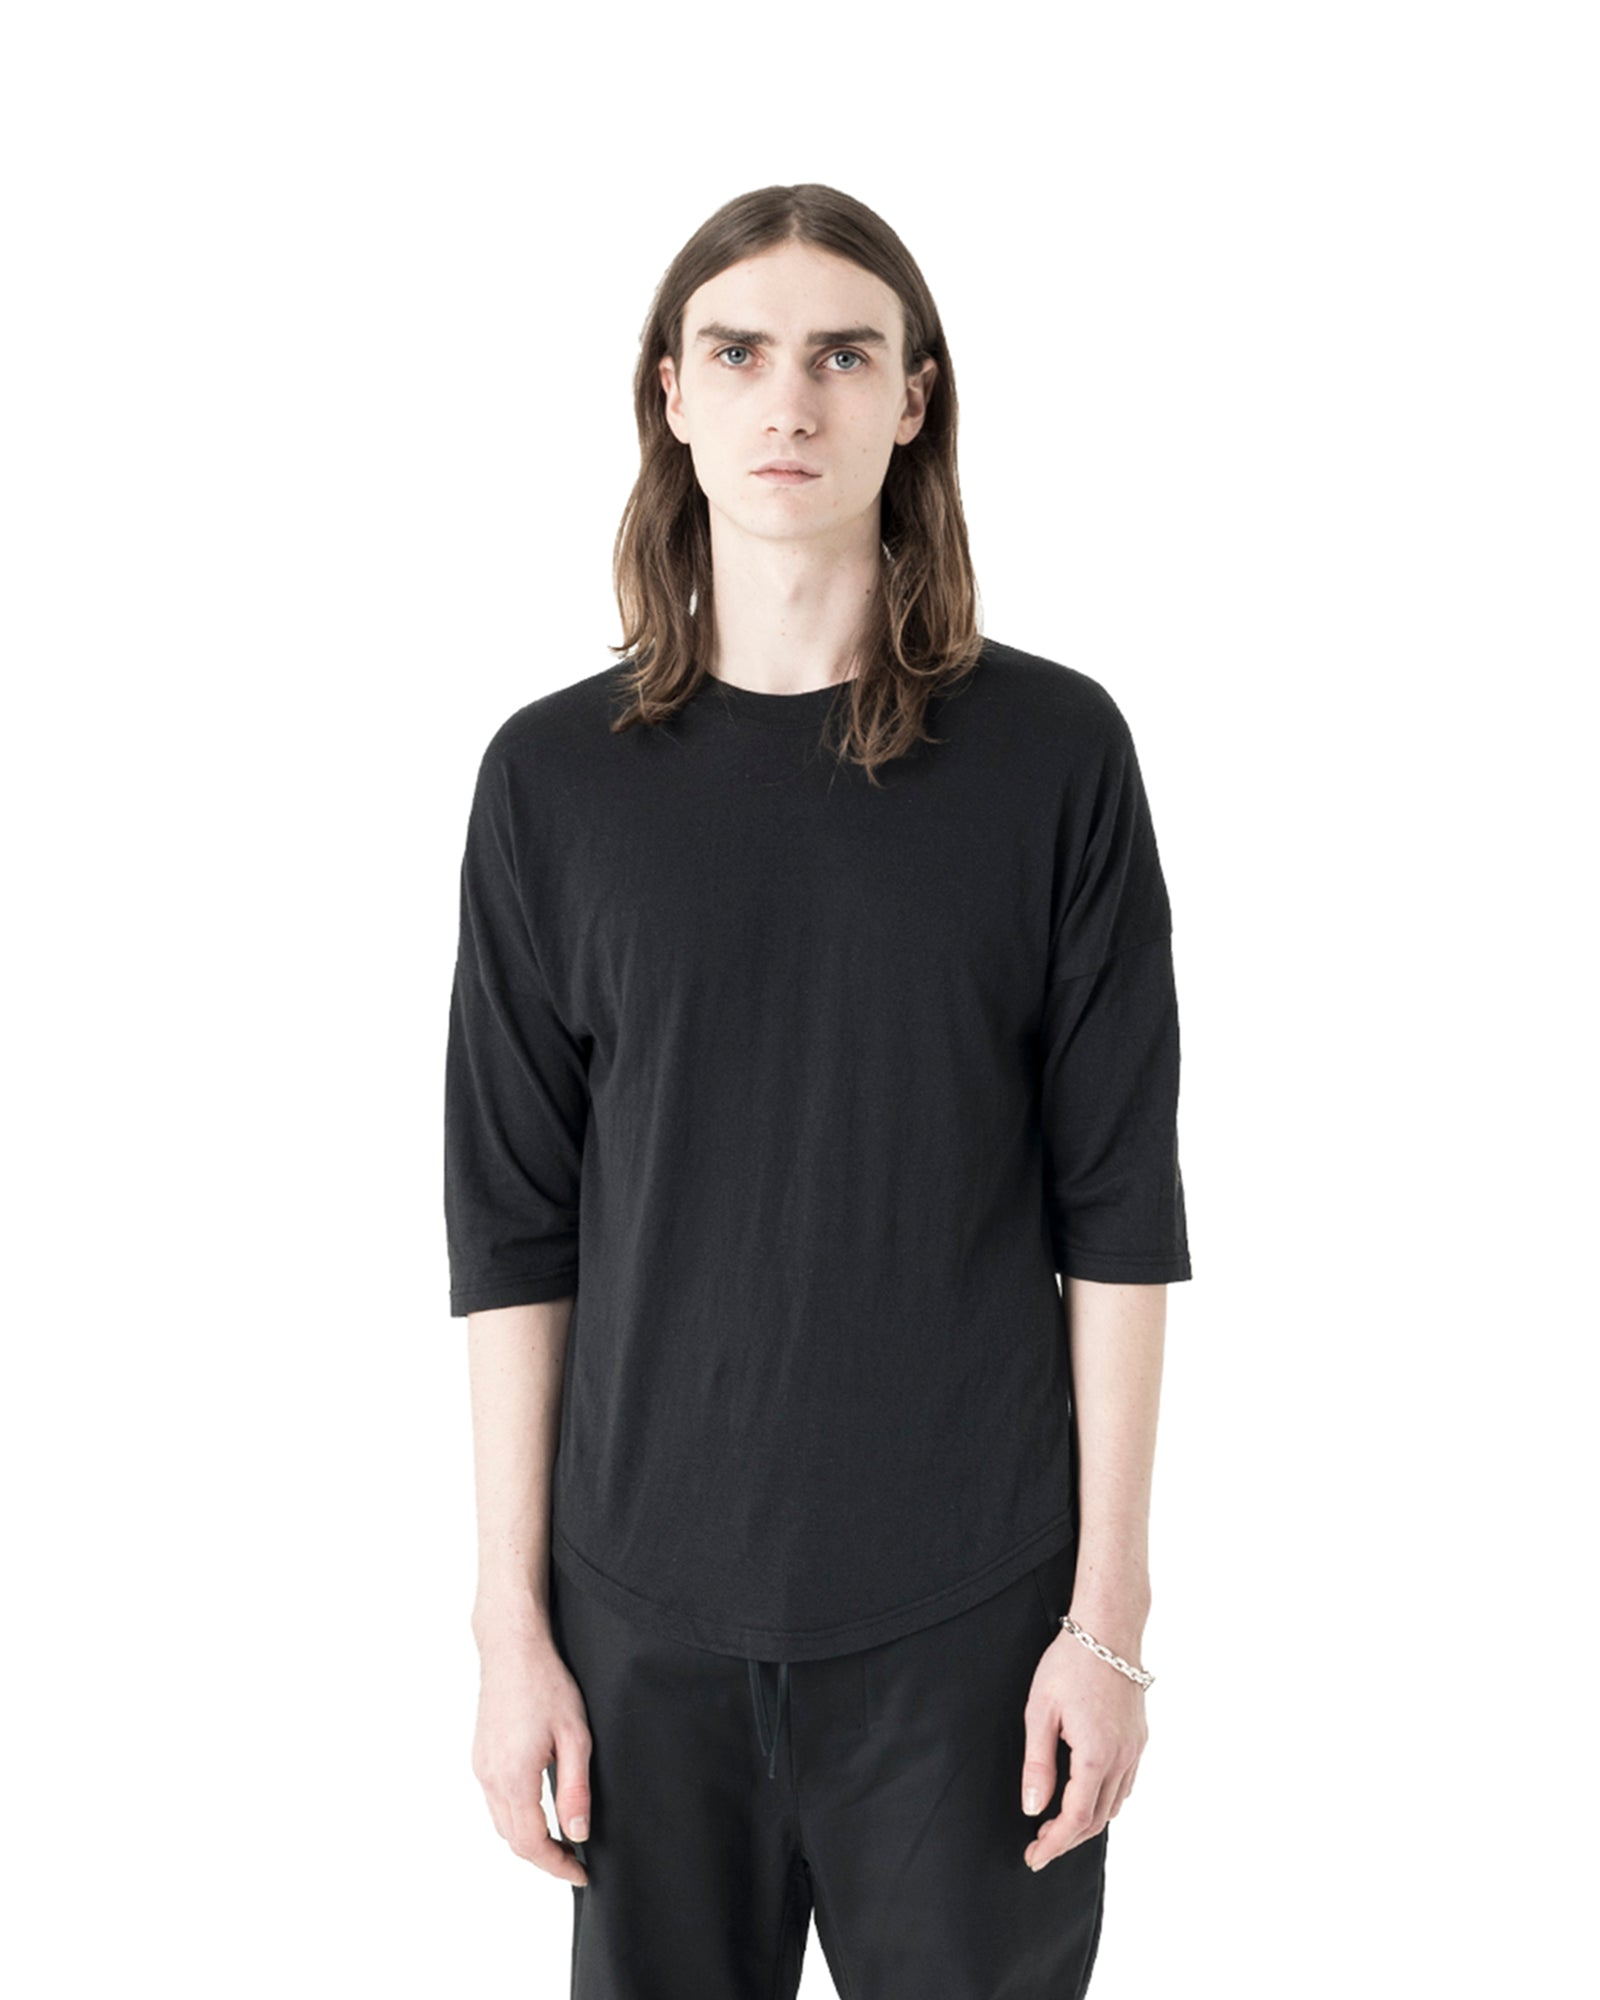 Plaz 3/4 Sleeve T-shirt - Black